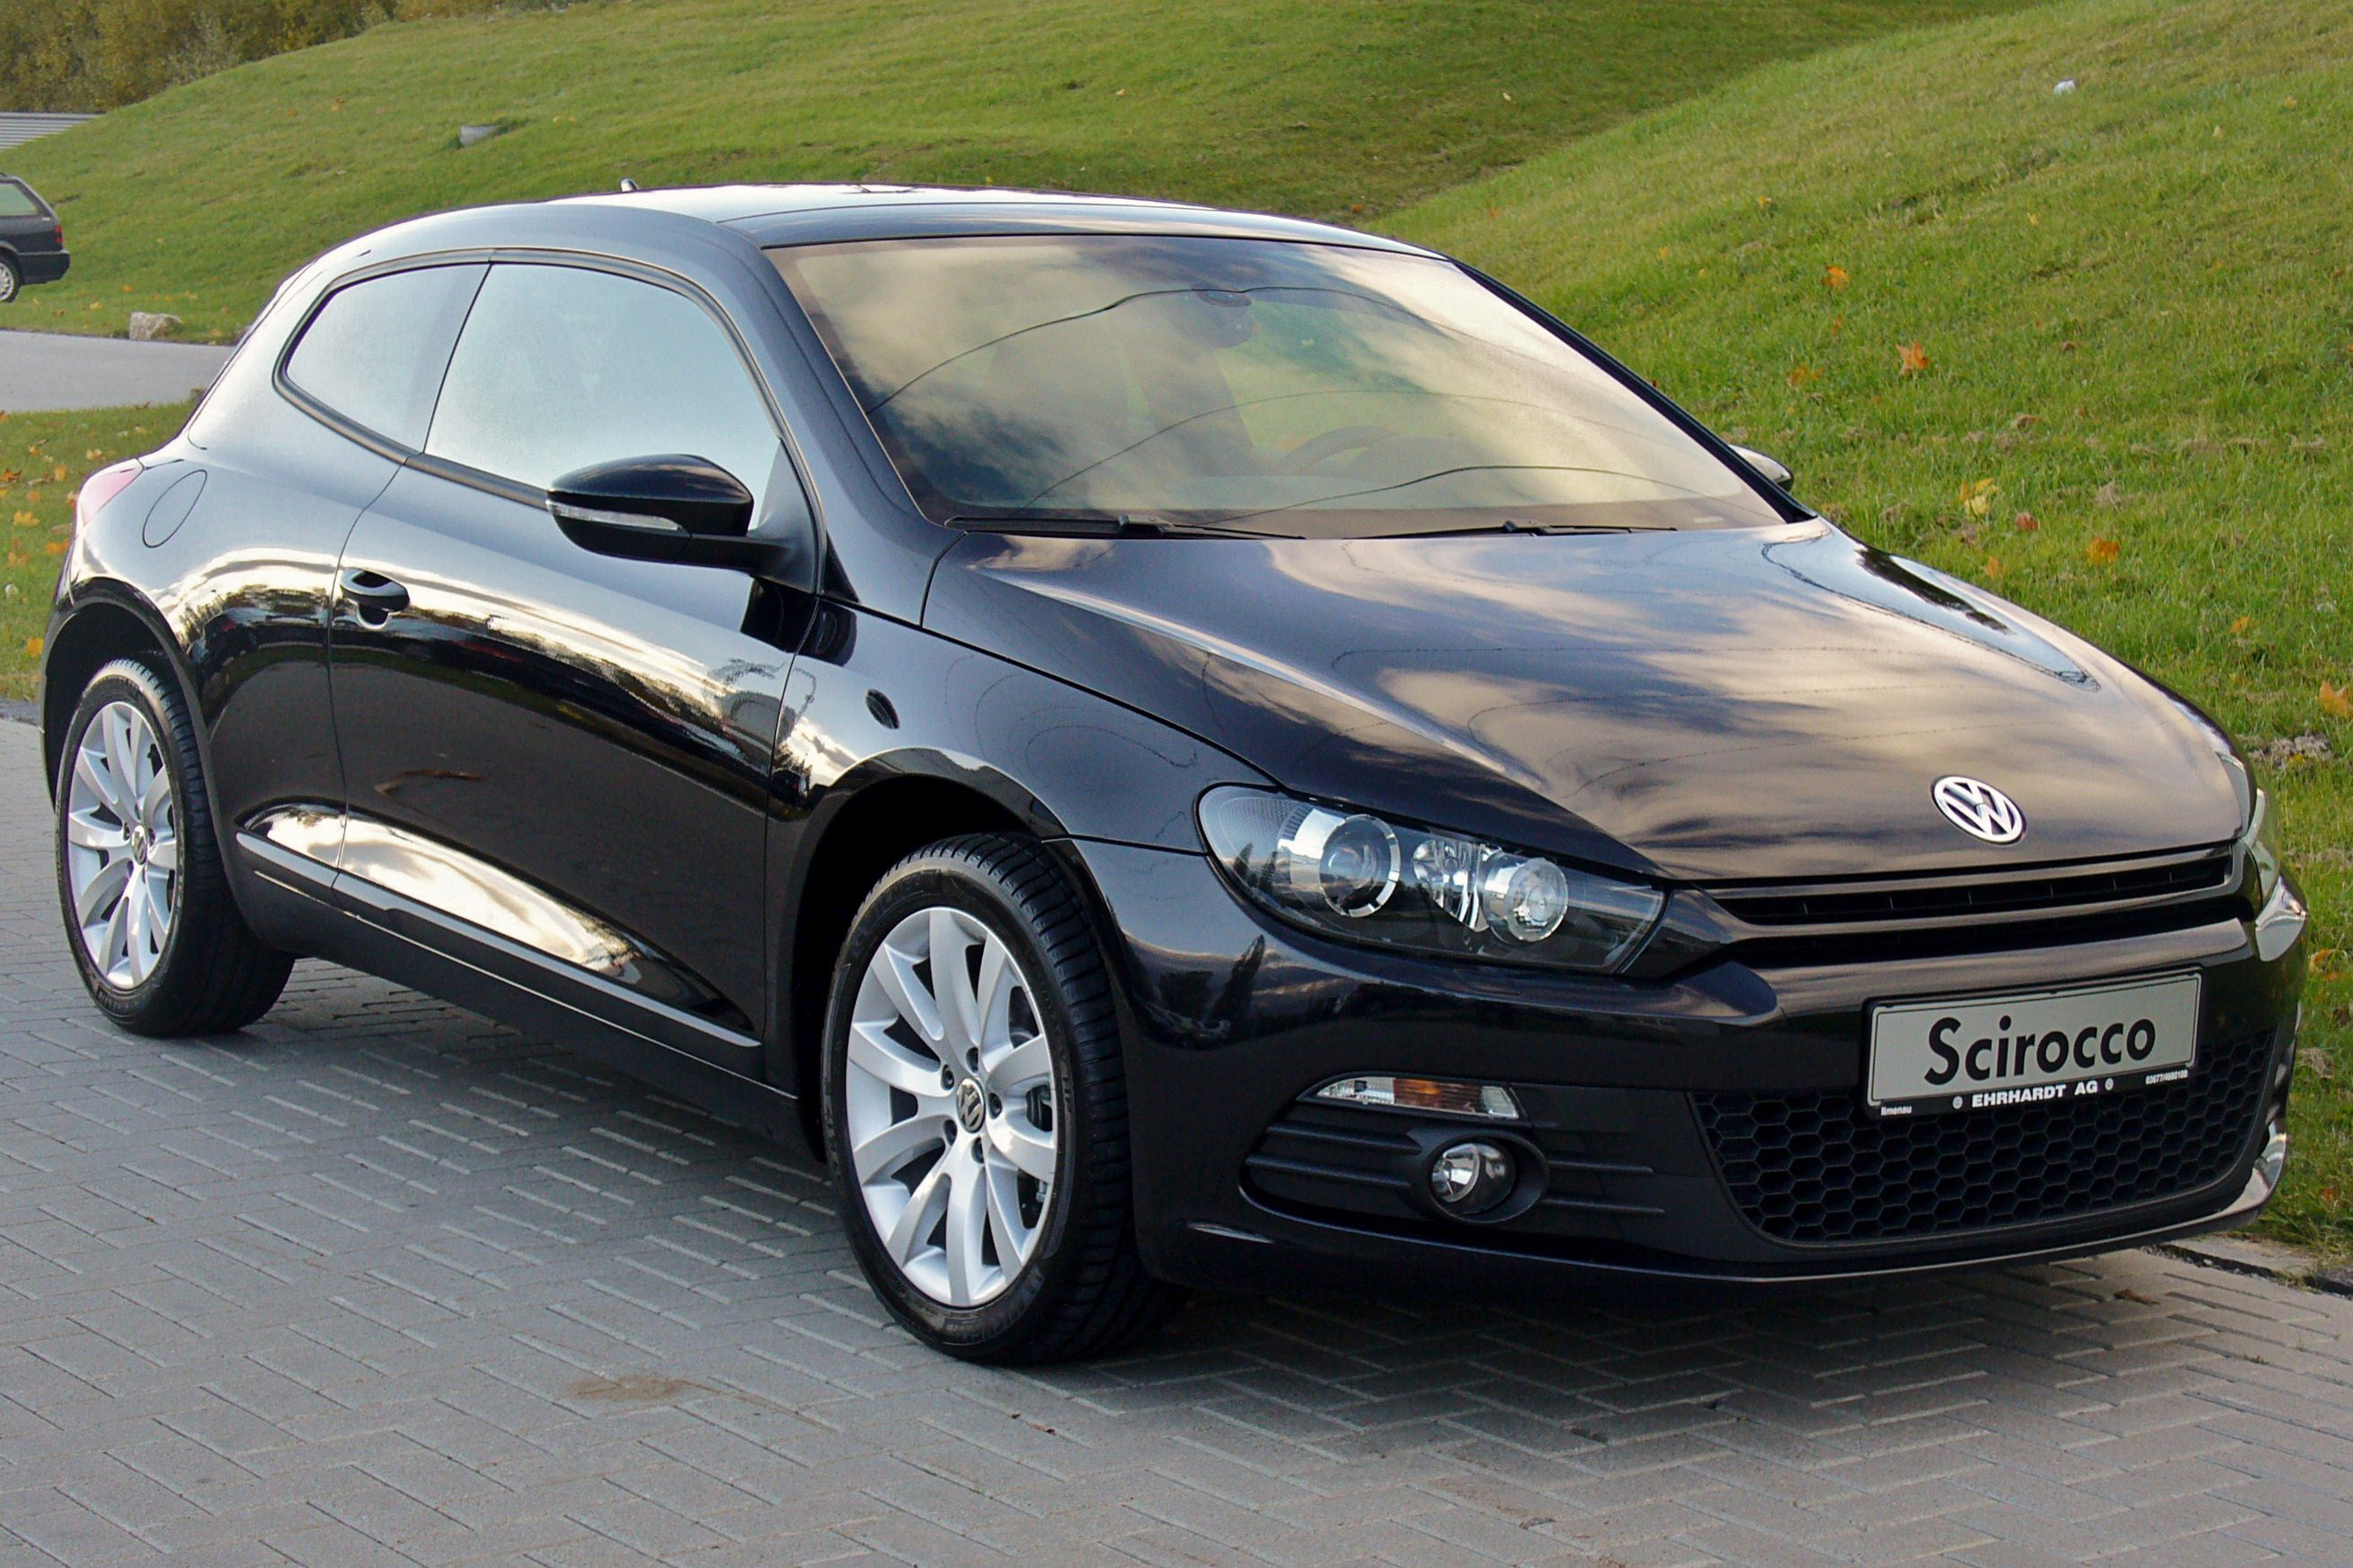 file vw scirocco iii 1 4 tsi dsg team deep black jpg wikimedia commons. Black Bedroom Furniture Sets. Home Design Ideas